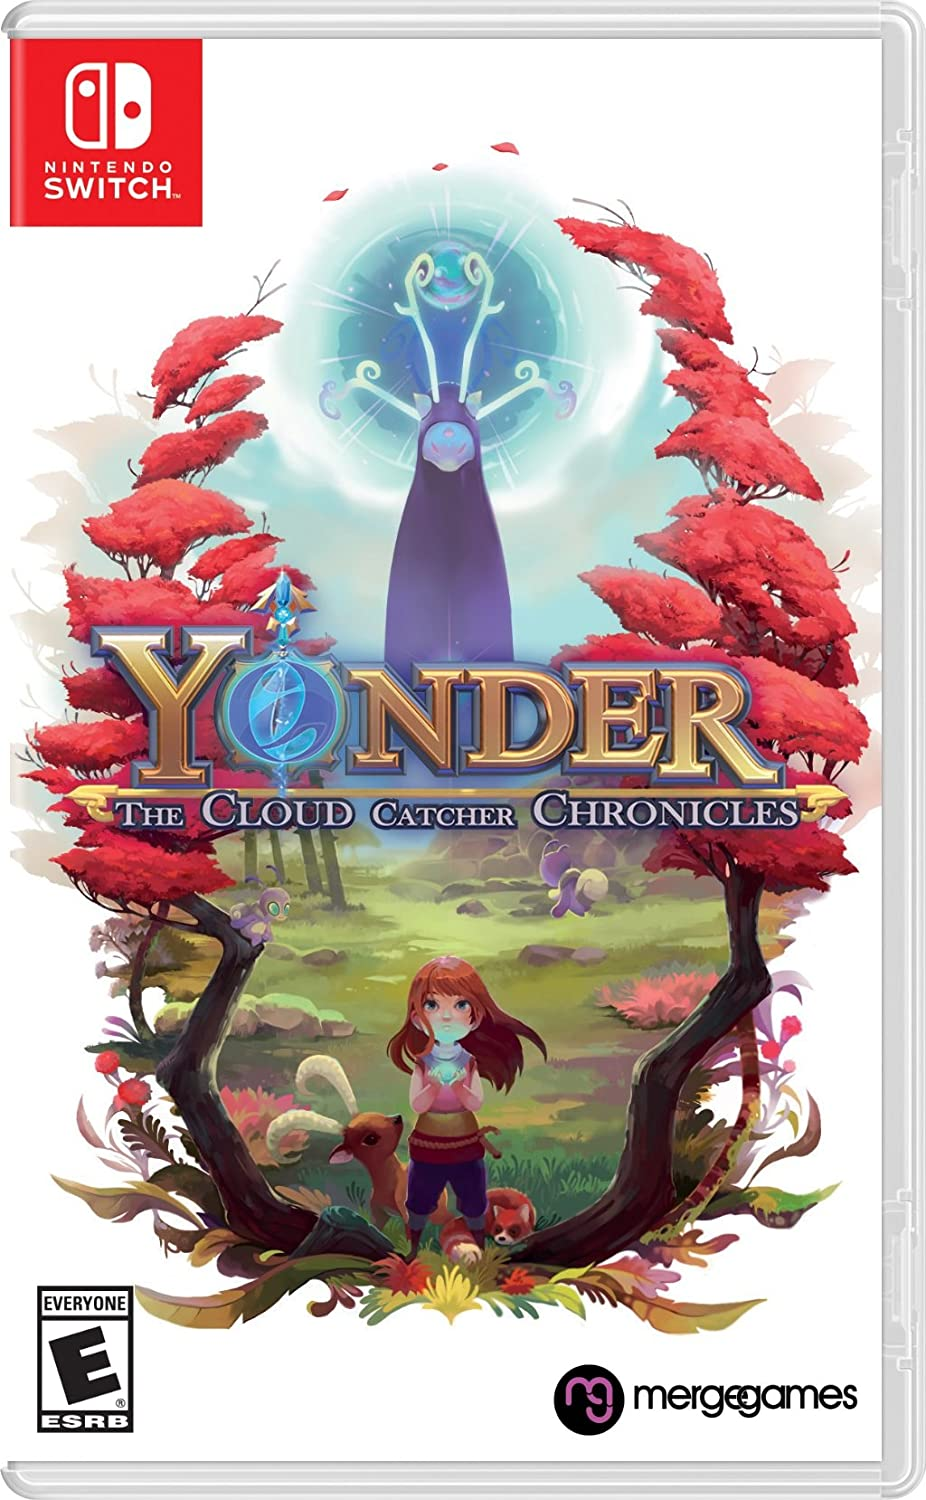 Yonder The Cloud Catcher Chronicles   Nintendo Switch by Merge Games